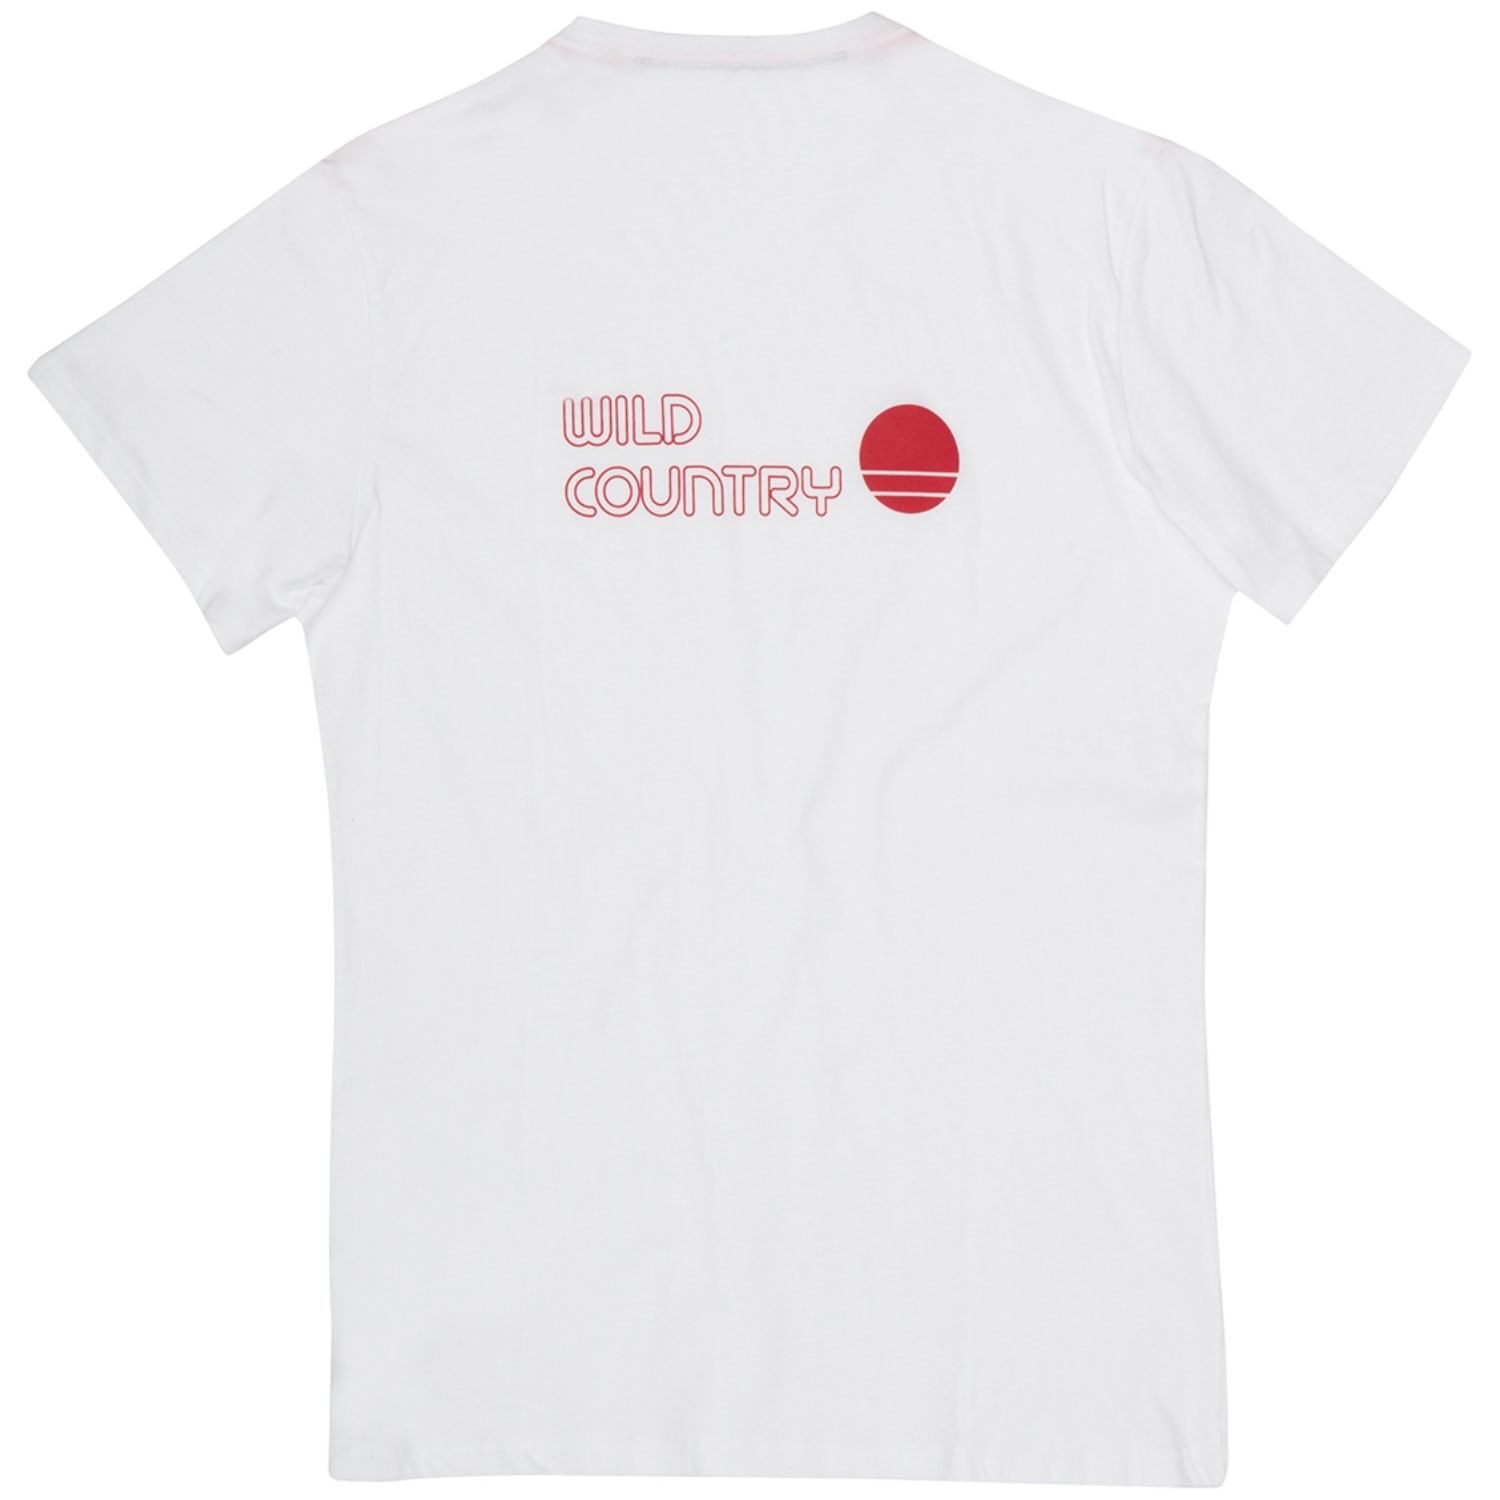 Wild Country Stanage Tee - White